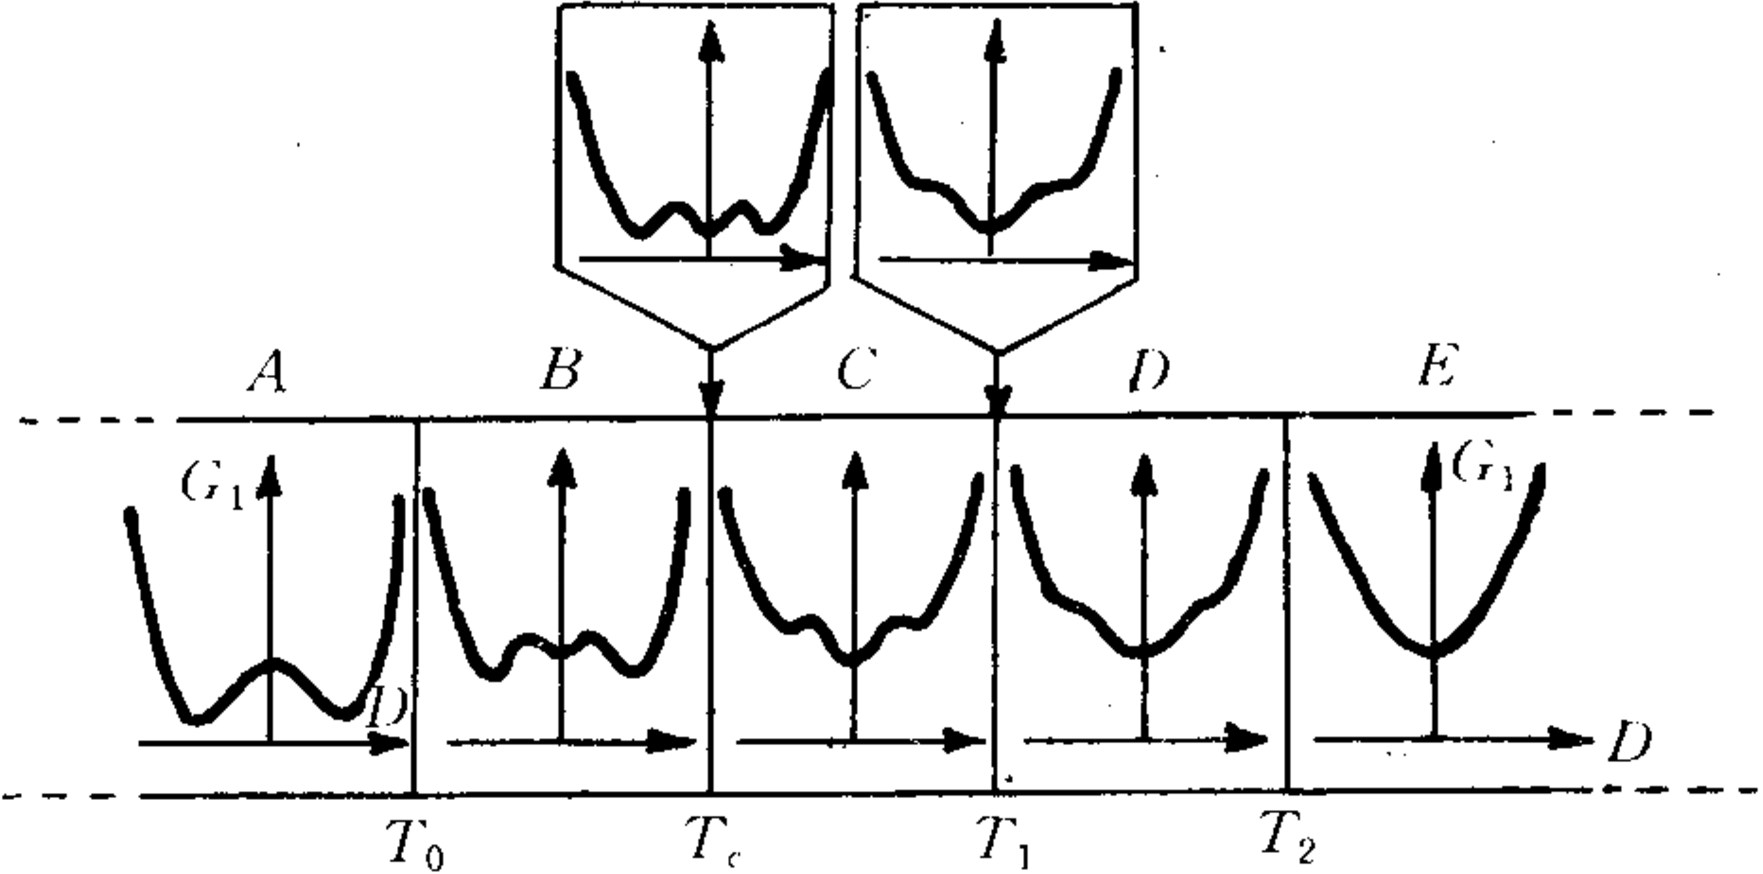 Advances in Thermodynamics of Ferroelectric Phase